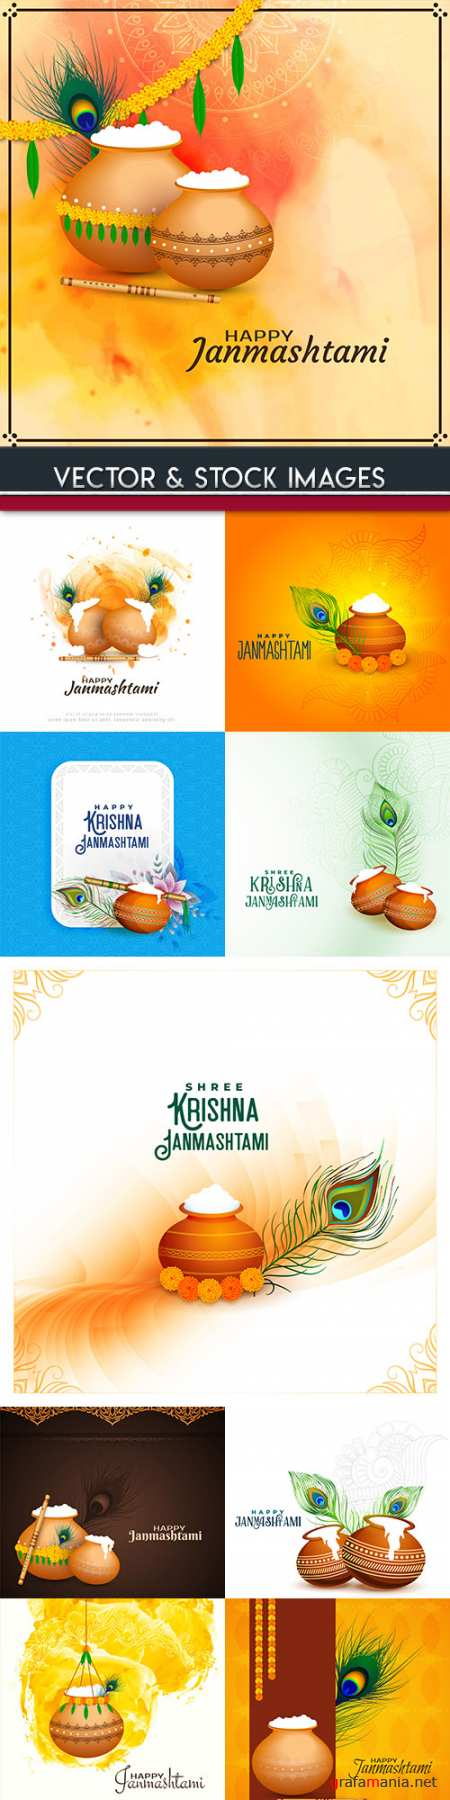 Janmashtami Indian holiday background design